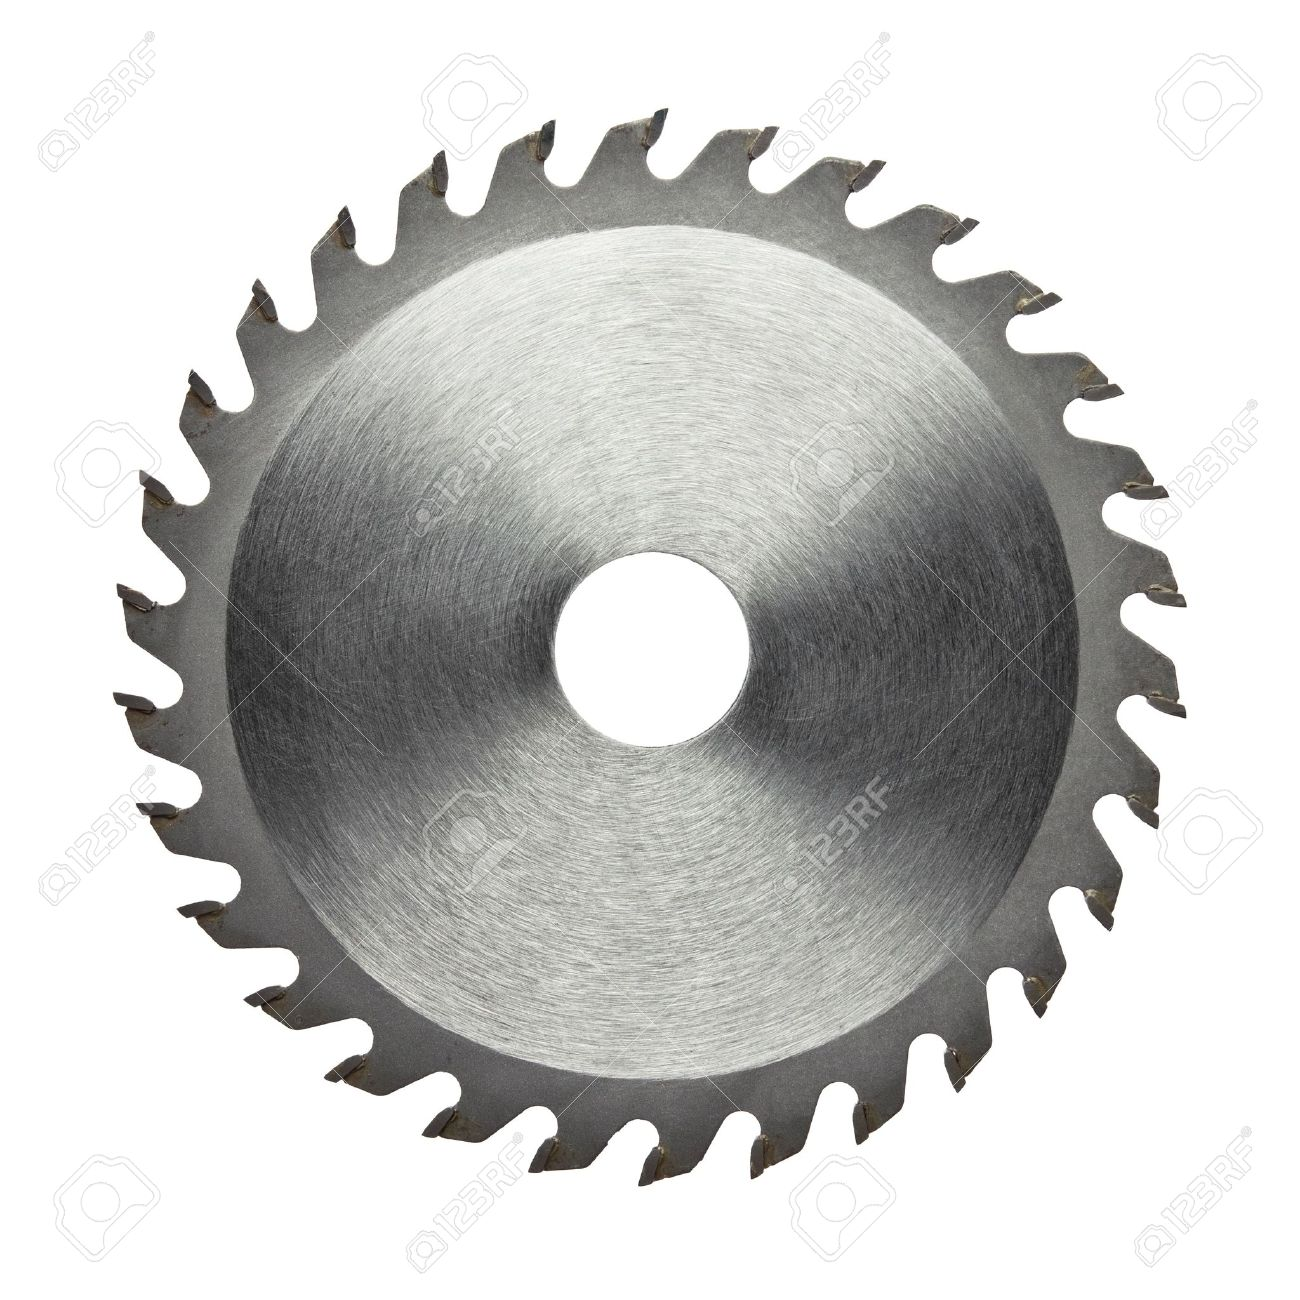 circular saw blade for wood work stock photo picture and royalty rh 123rf com vector or clipart saw blade circular saw blade clipart free